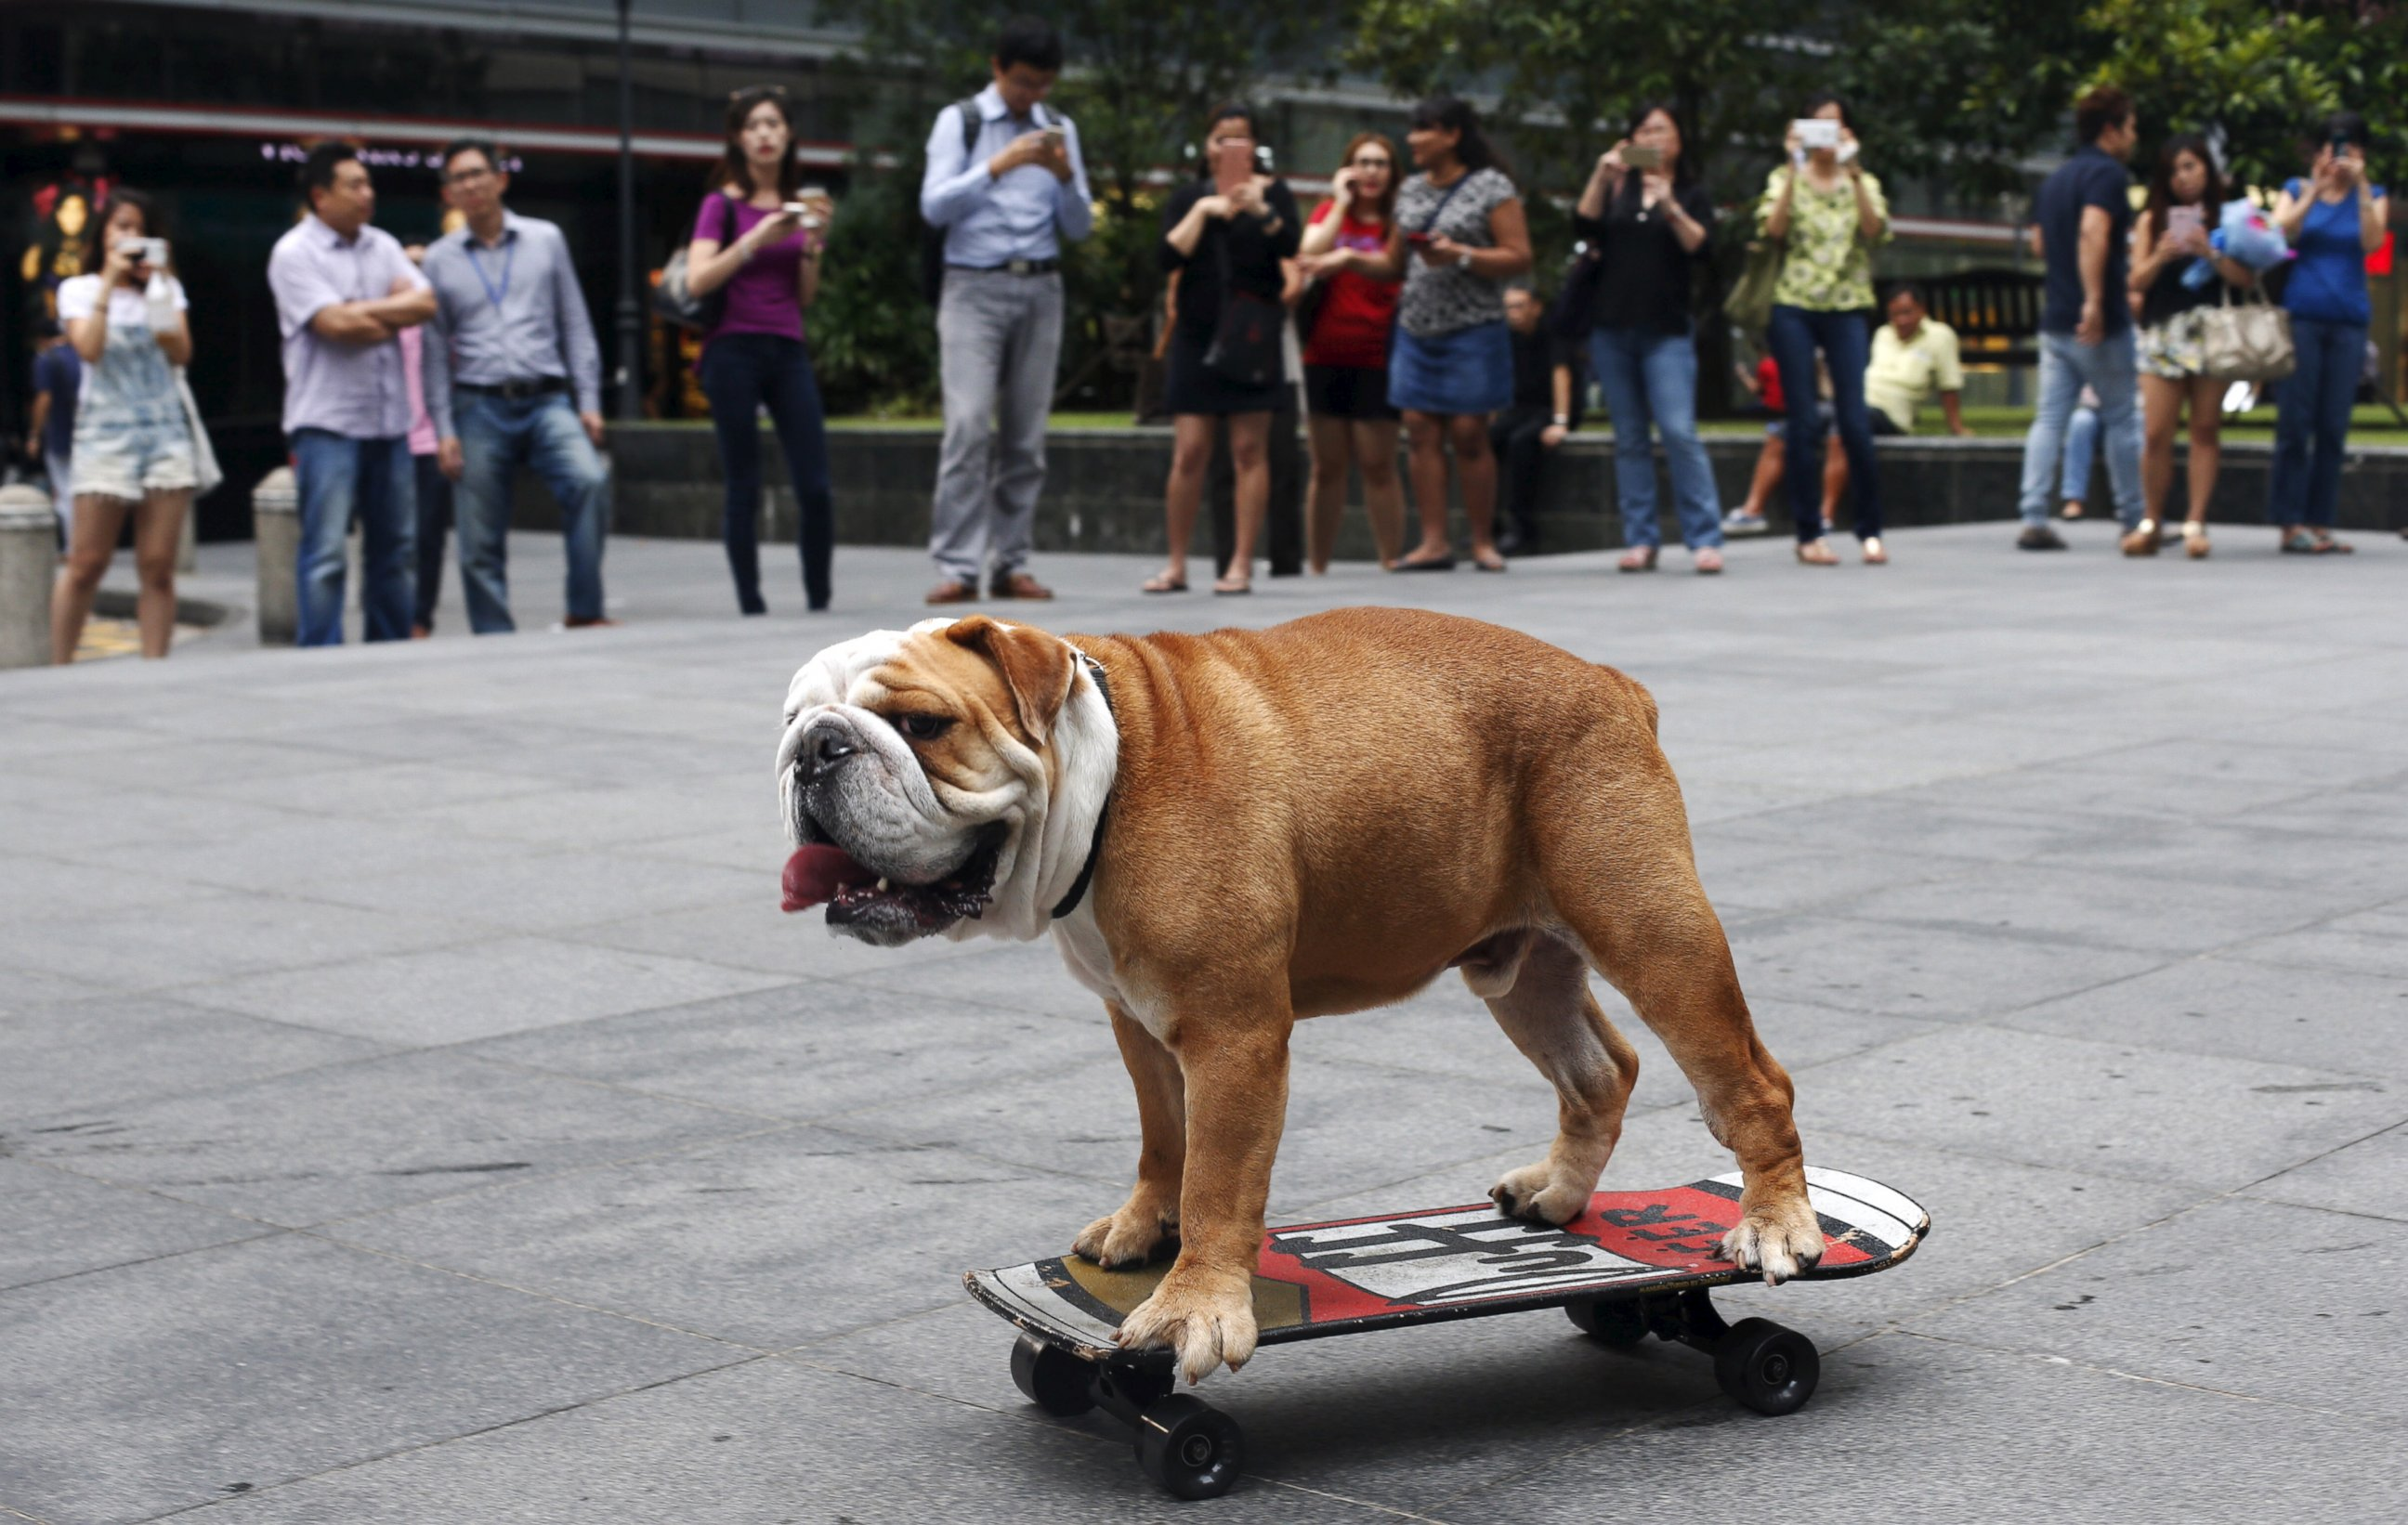 Check Out the Dog That Can Skateboard